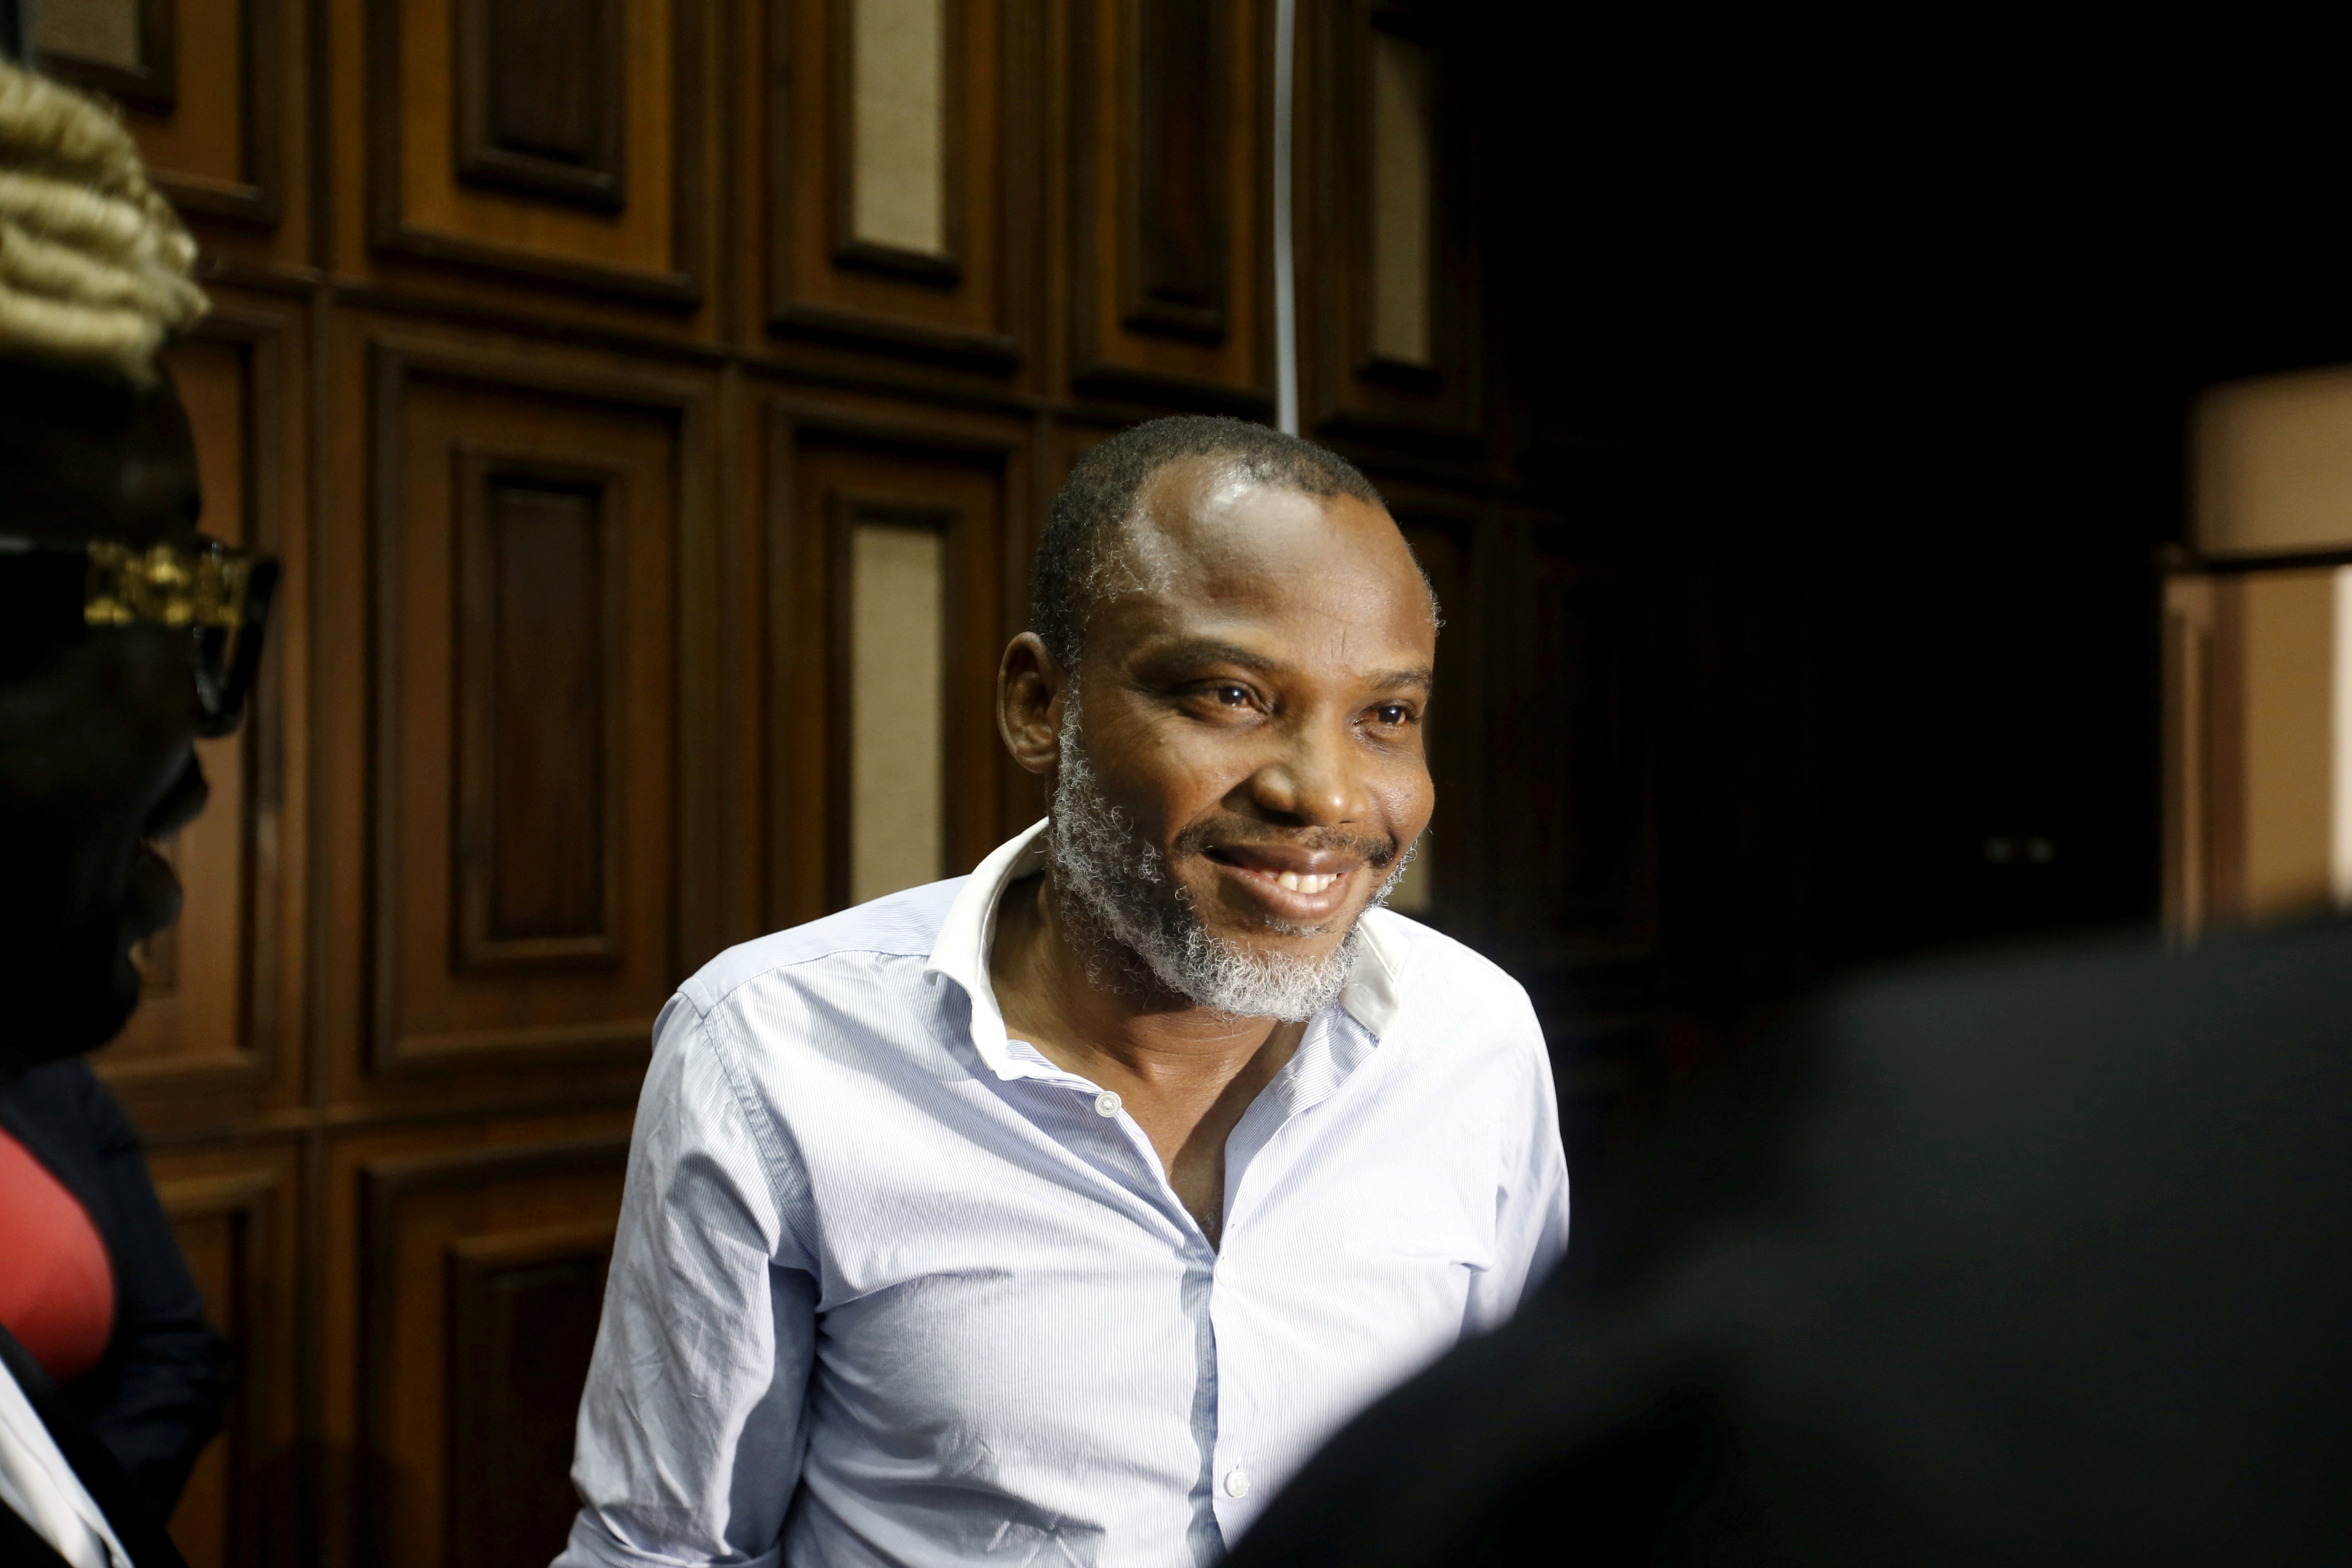 Indigenous People of Biafra (IPOB) leader Nnamdi Kanu is seen at the Federal high court Abuja, Nigeria, on January 20, 2016. REUTERS/Afolabi Sotunde/File Photo